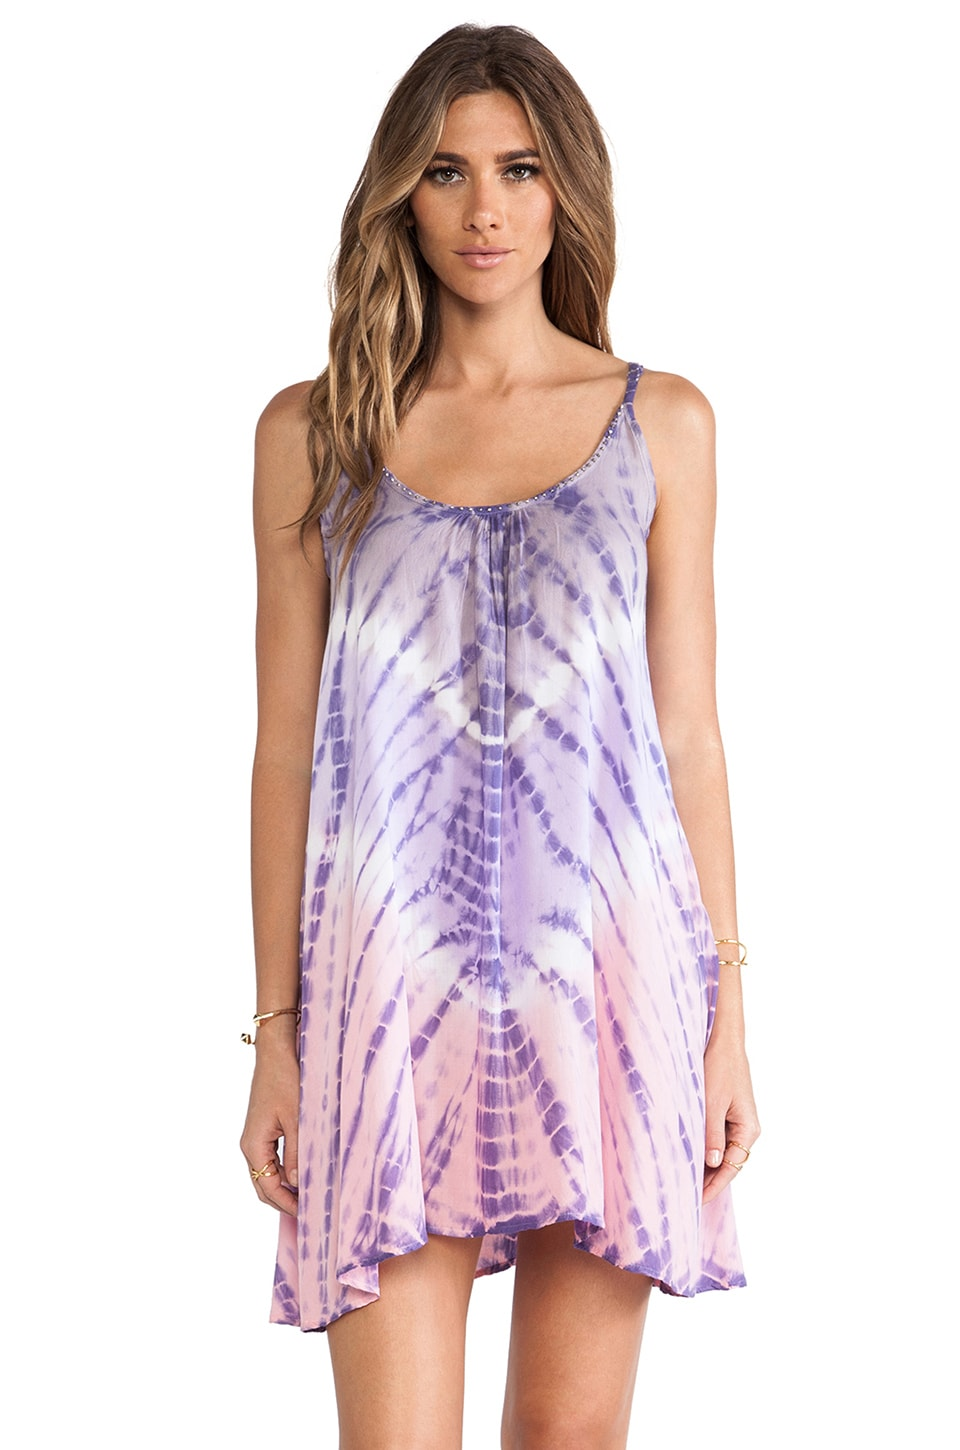 Tiare Hawaii Voile Stud Mini Dress in Grey & Violet & Pink Vibe